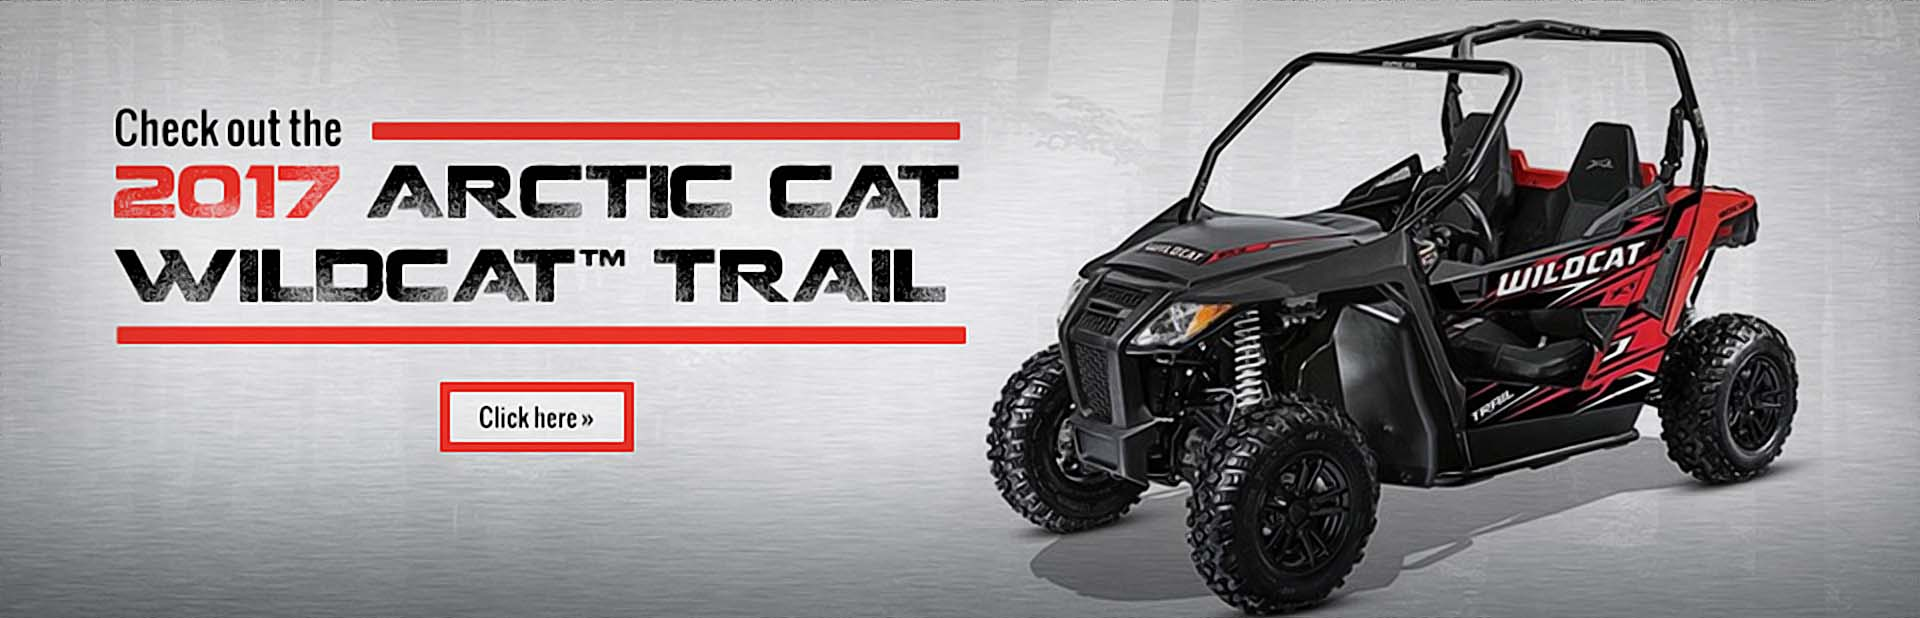 Arctic Cat Dealer Duluth Mn